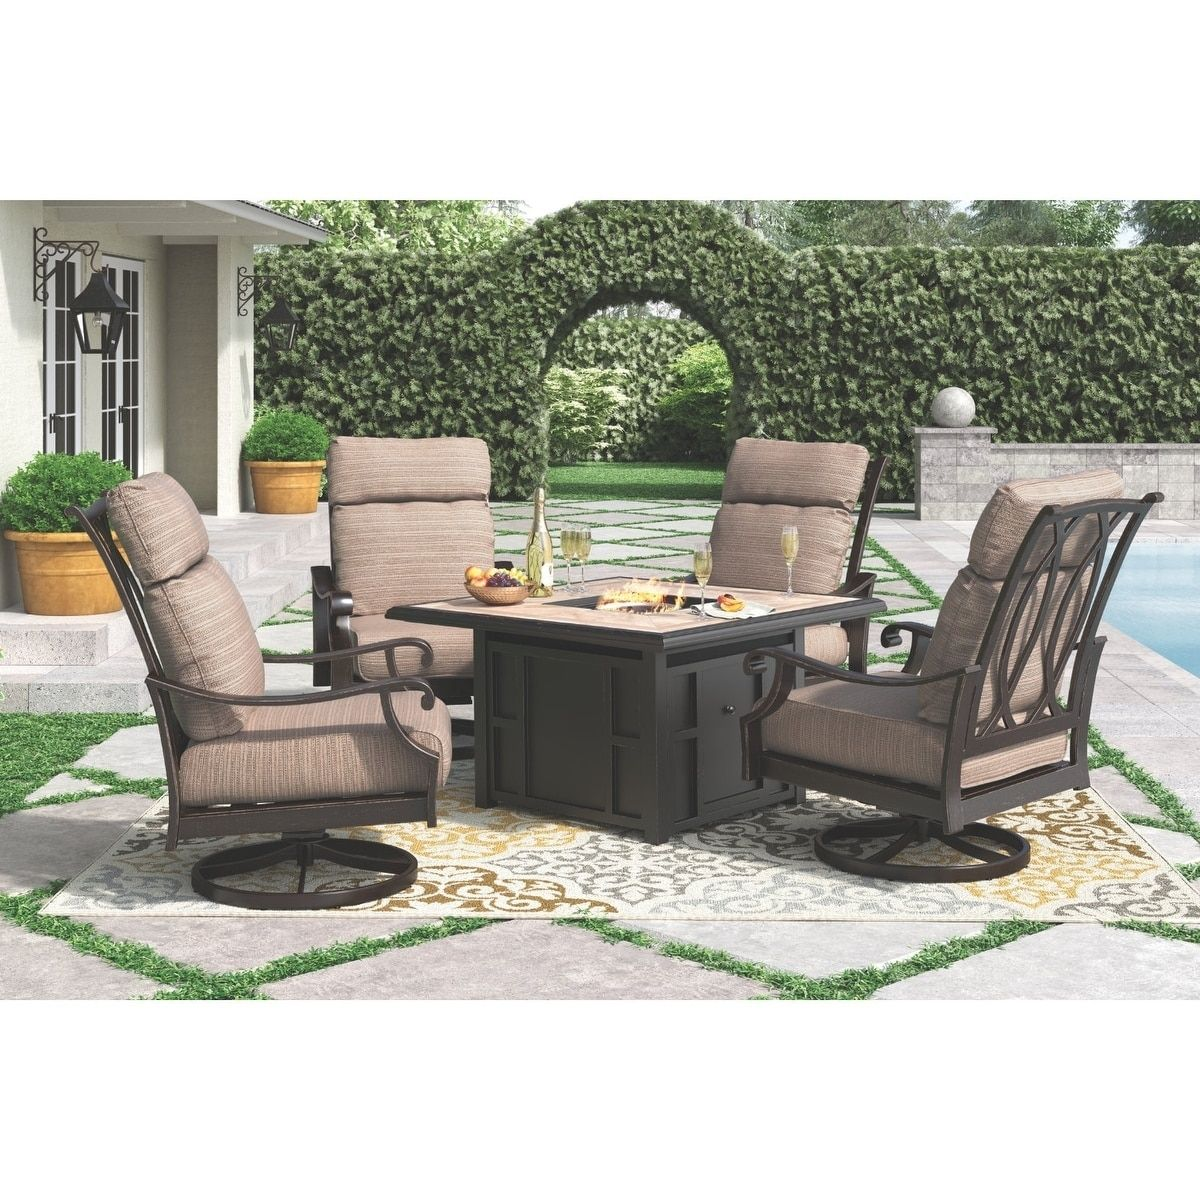 Chestnut Ridge Outdoor Square Fire Pit Table with